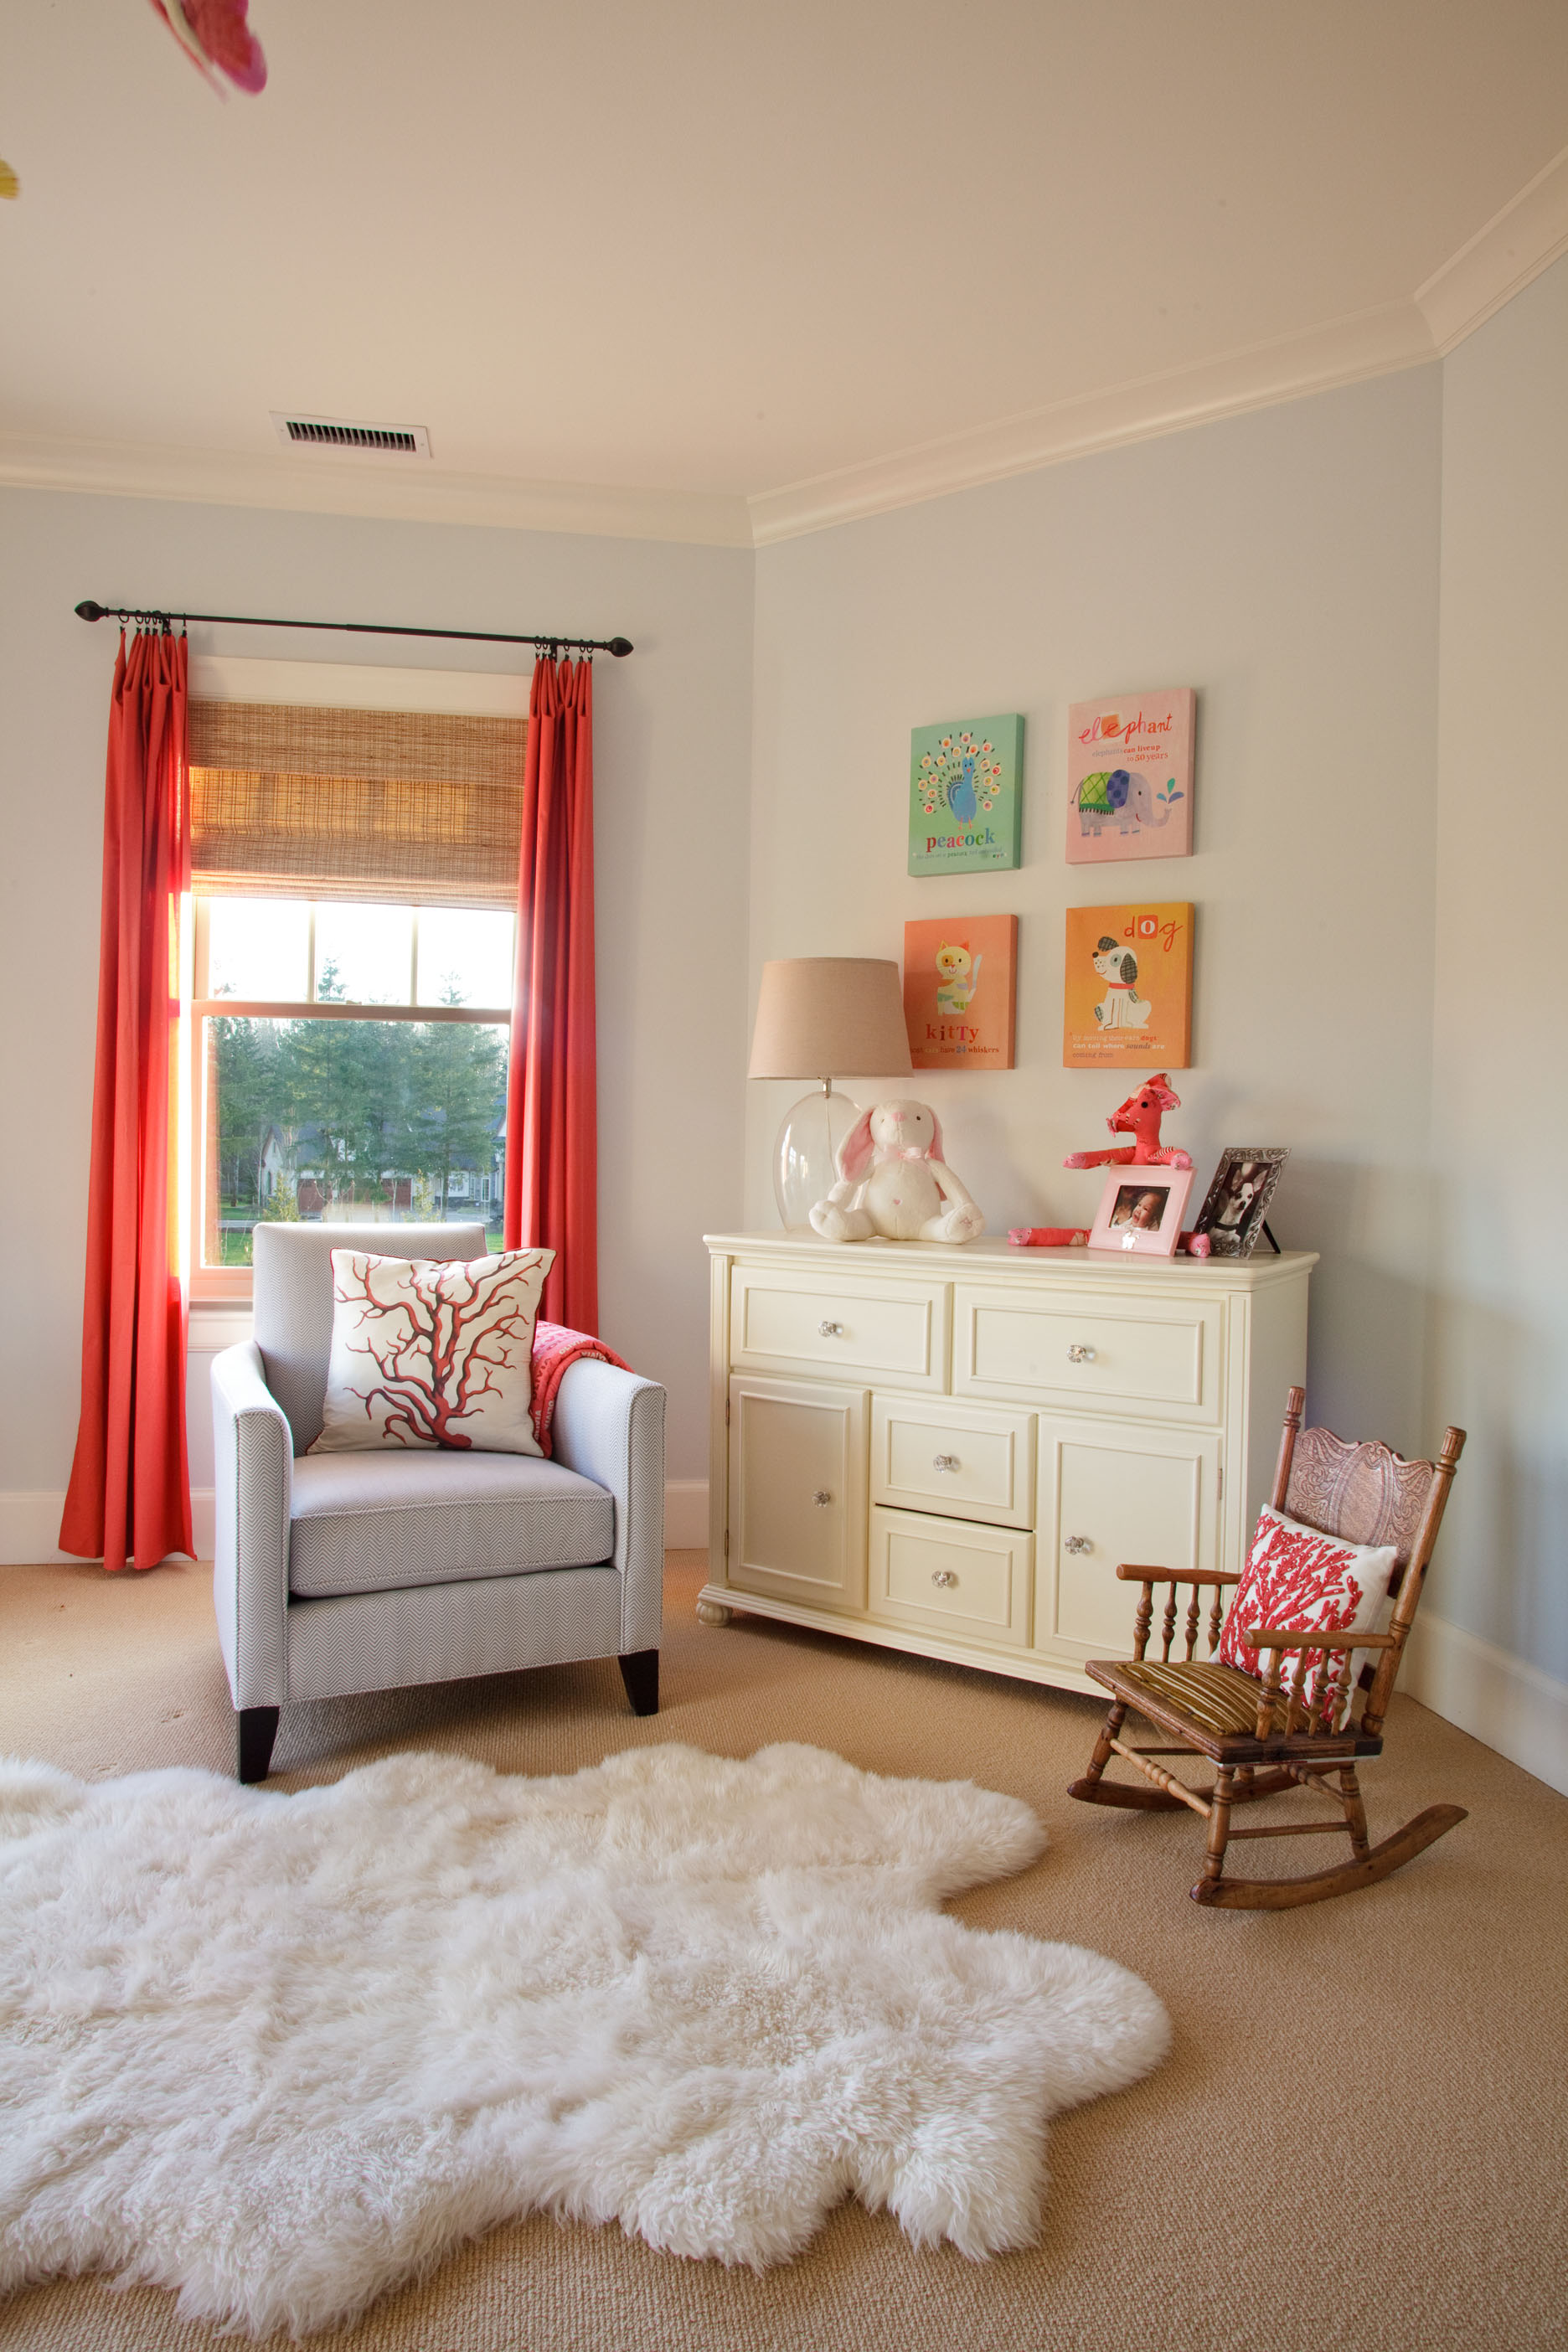 how to decorate a kids room, inspiration for bright kids rooms, nursery room window coverings